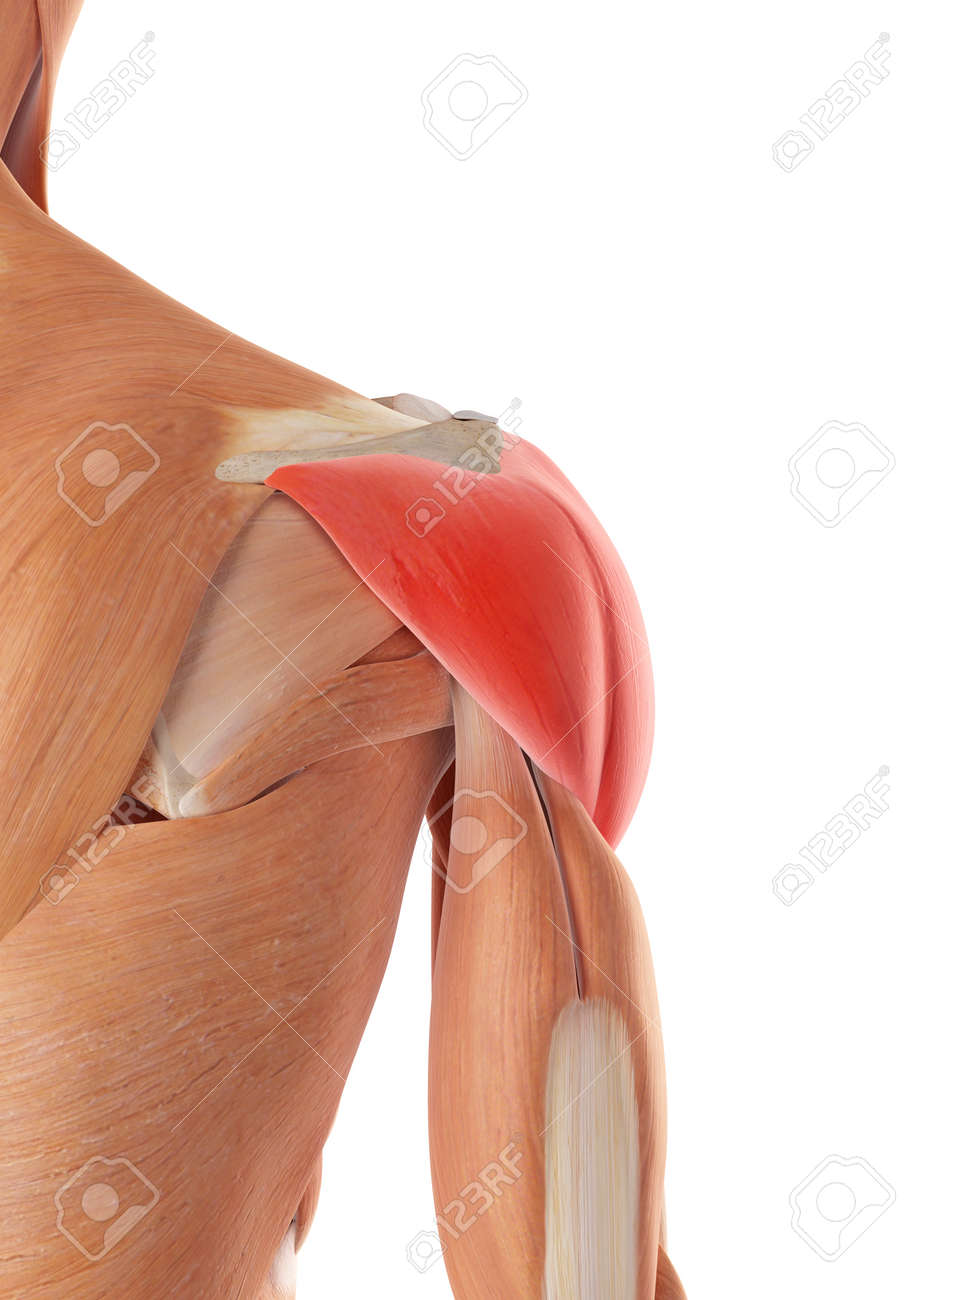 Medically Accurate Illustration Of The Deltoid Muscle Stock Photo ...